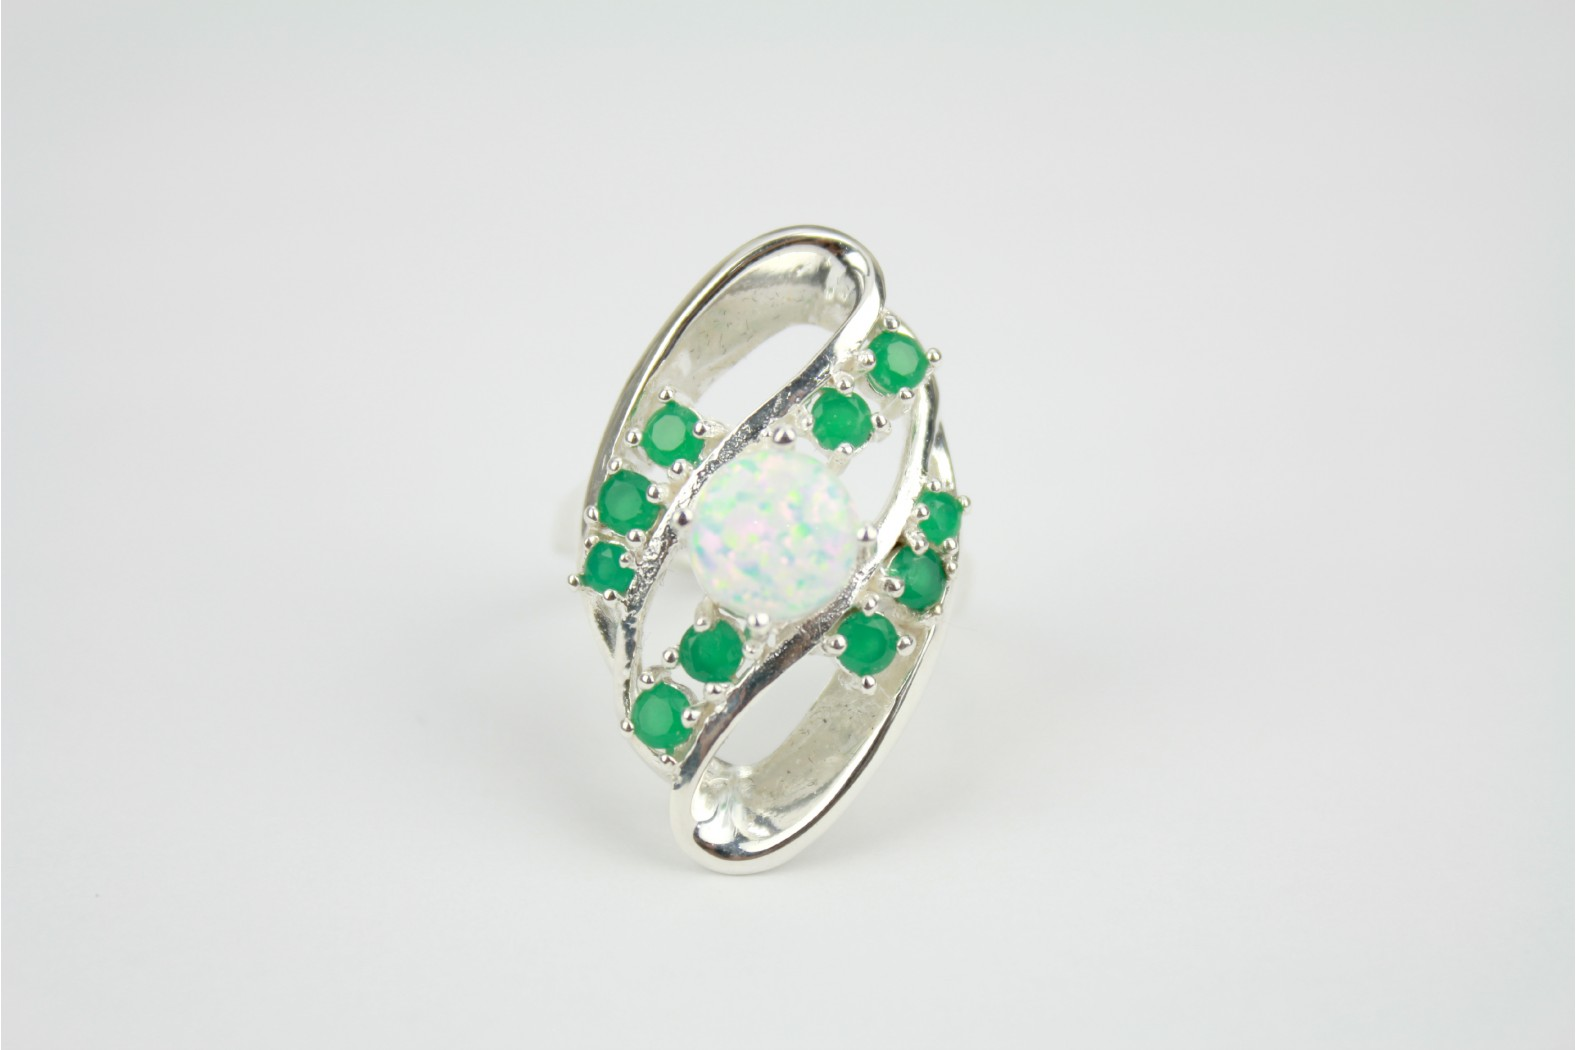 Contemporary Oval shape large white Opal fire enhanced with multi emerald stones size 9+ or S